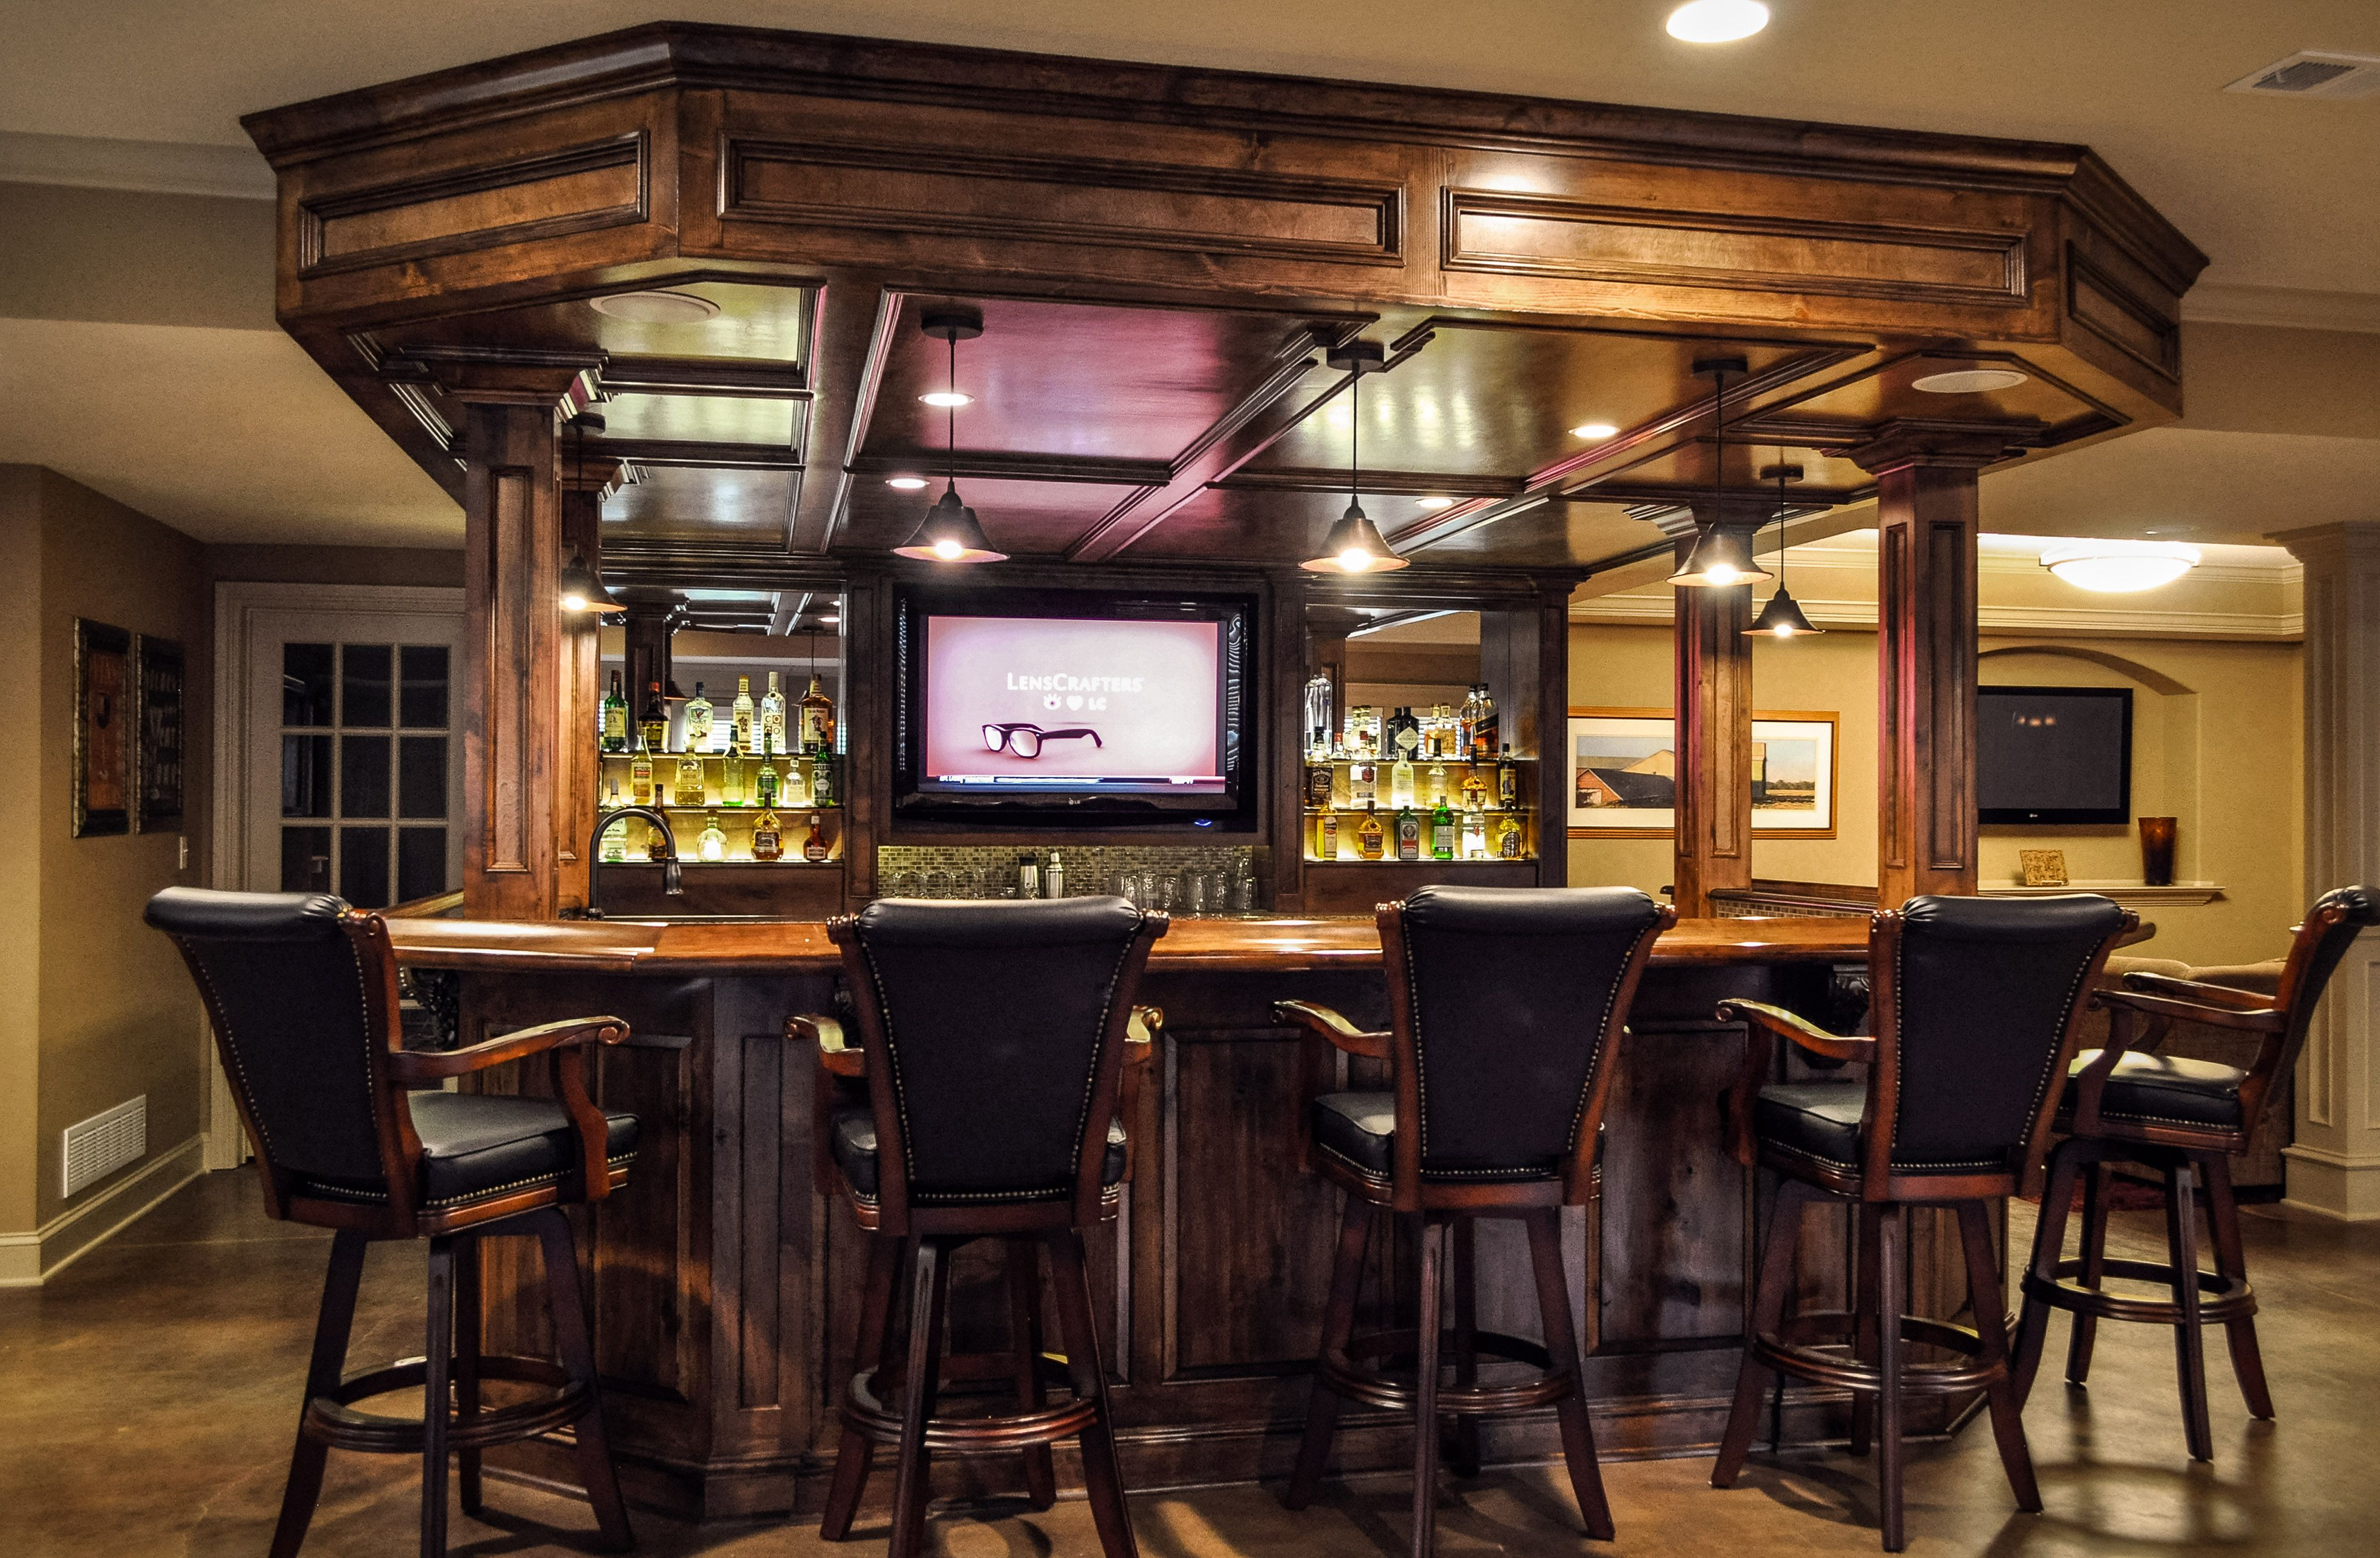 Elegant Basement Bar with Full of Wood Furniture and Soothing Lighting Features